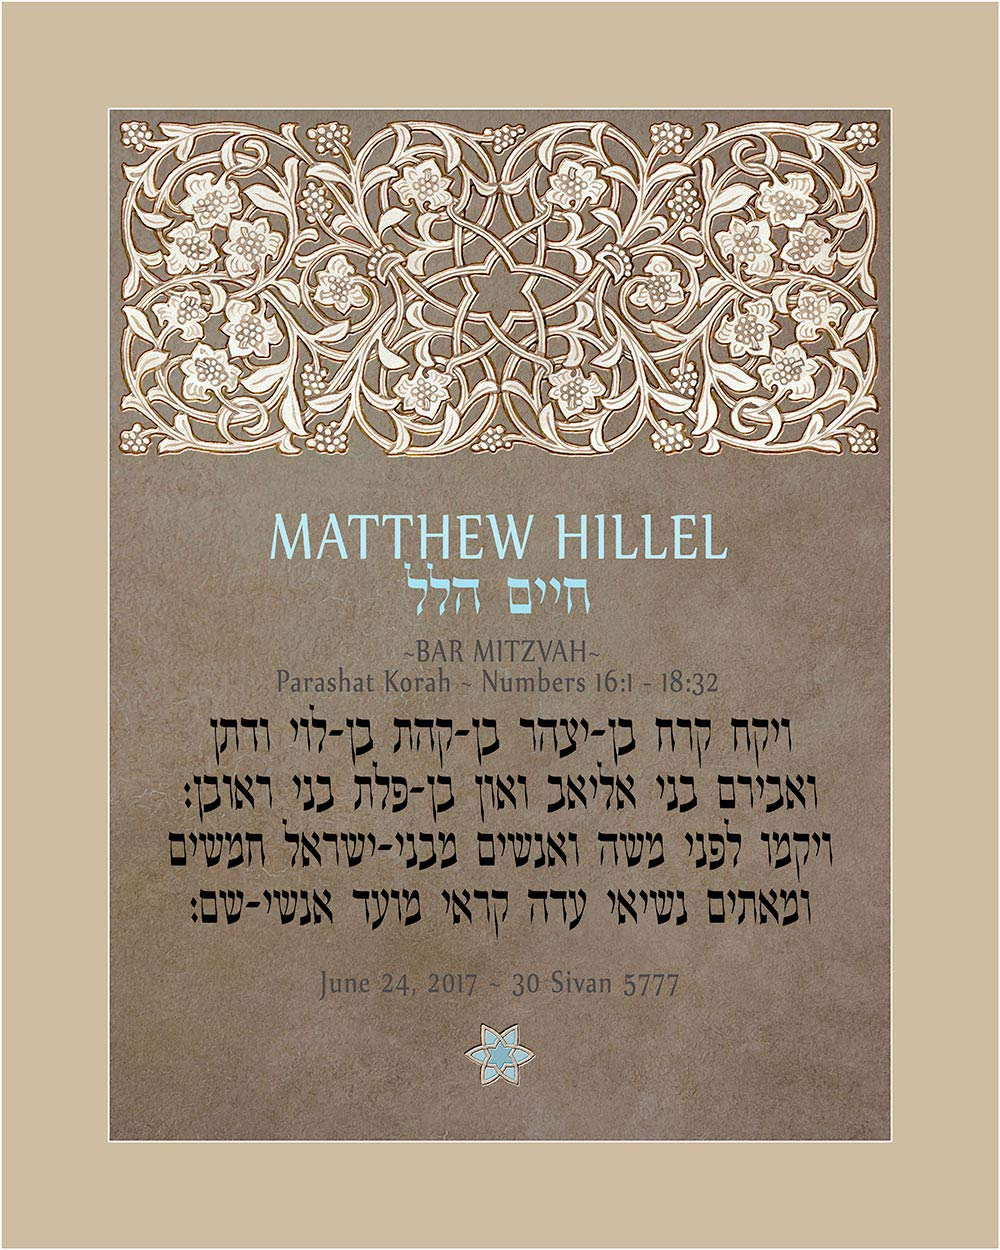 Personalized Bar Mitzvah Lattice Parasha Certificate